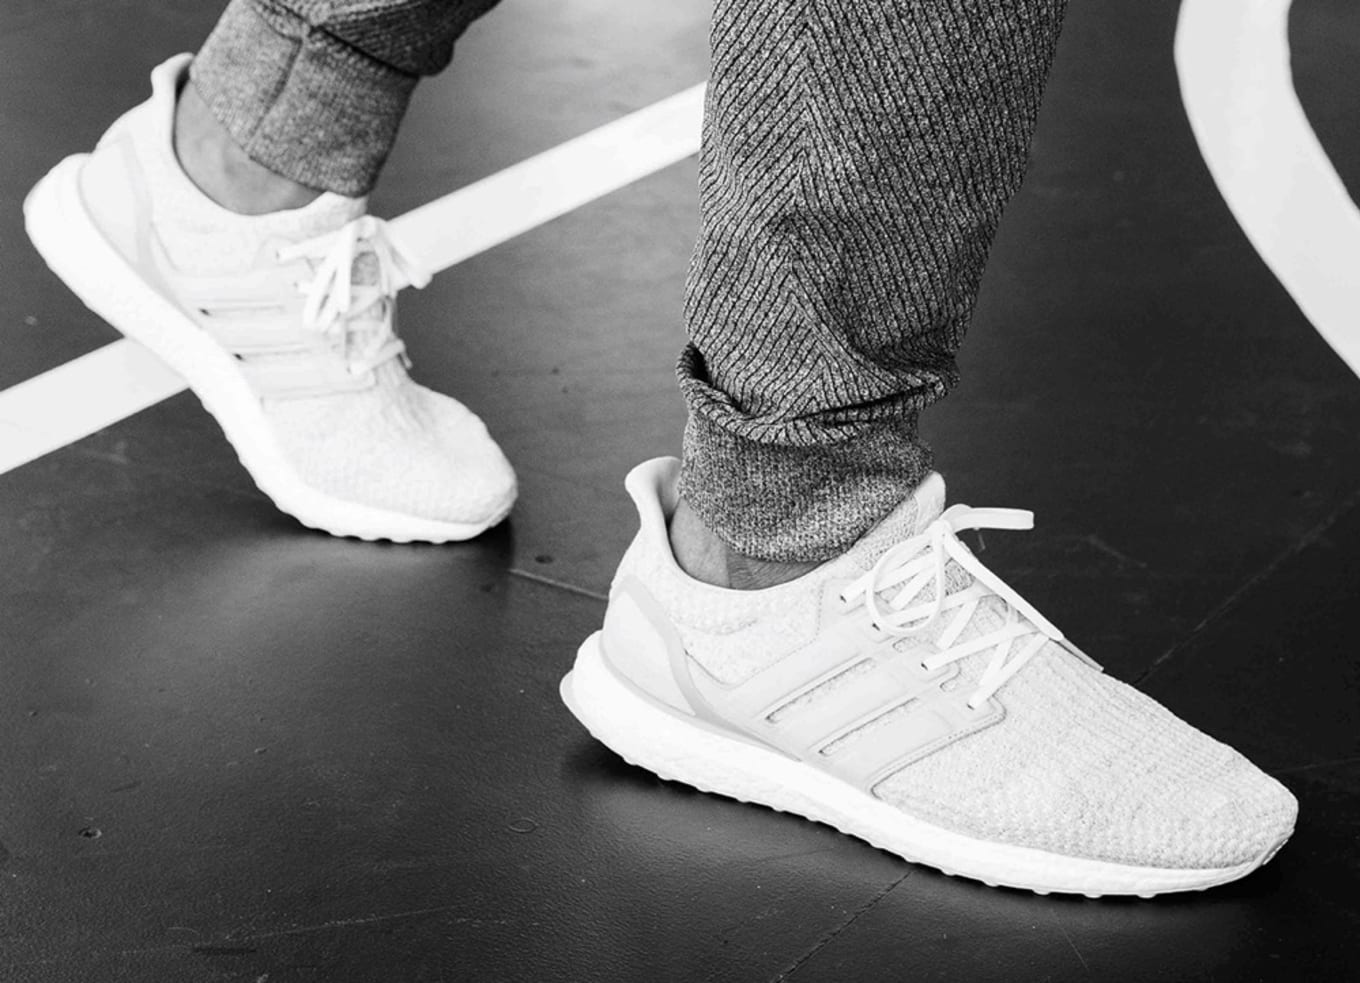 new styles f8d19 74152 The next collection from Reigning Champ x Adidas releases on April 7.